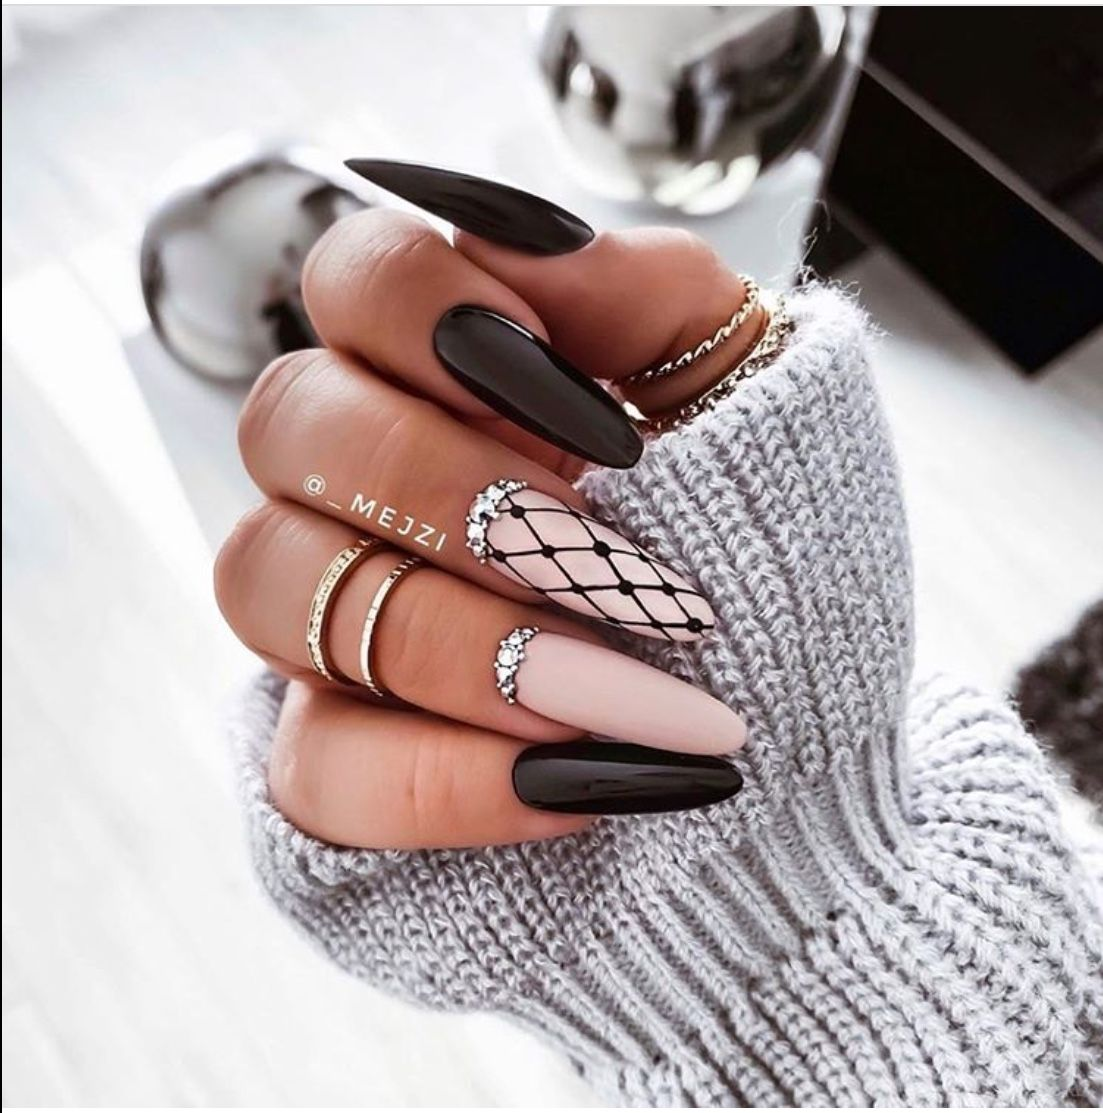 Pink and black nail art with fishnet effect